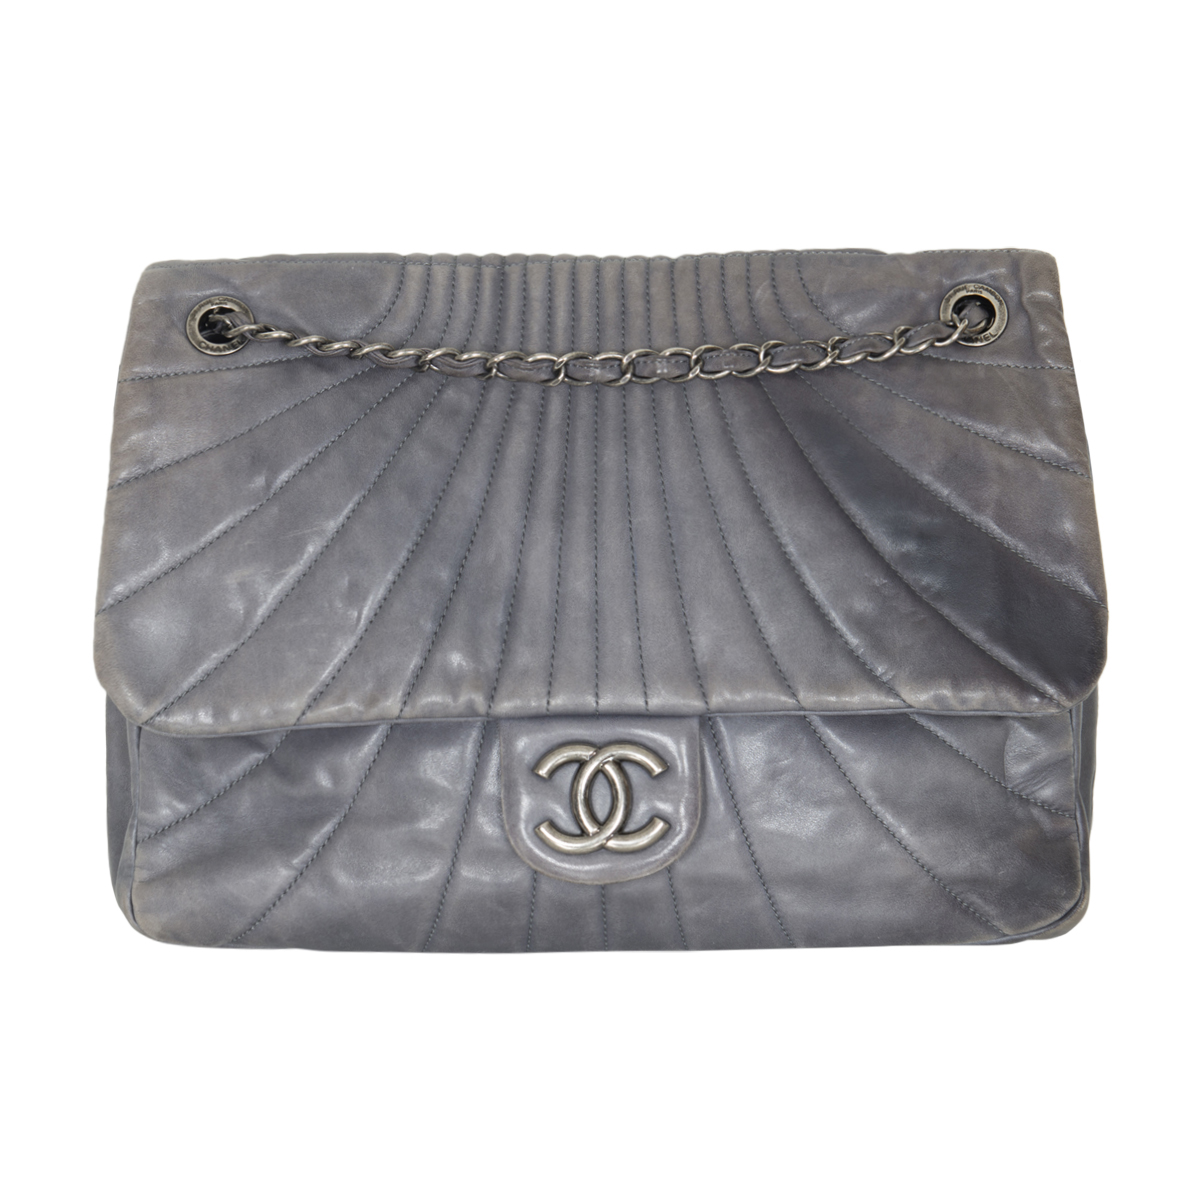 Chanel Quilted Calfskin Chain Flap Bag